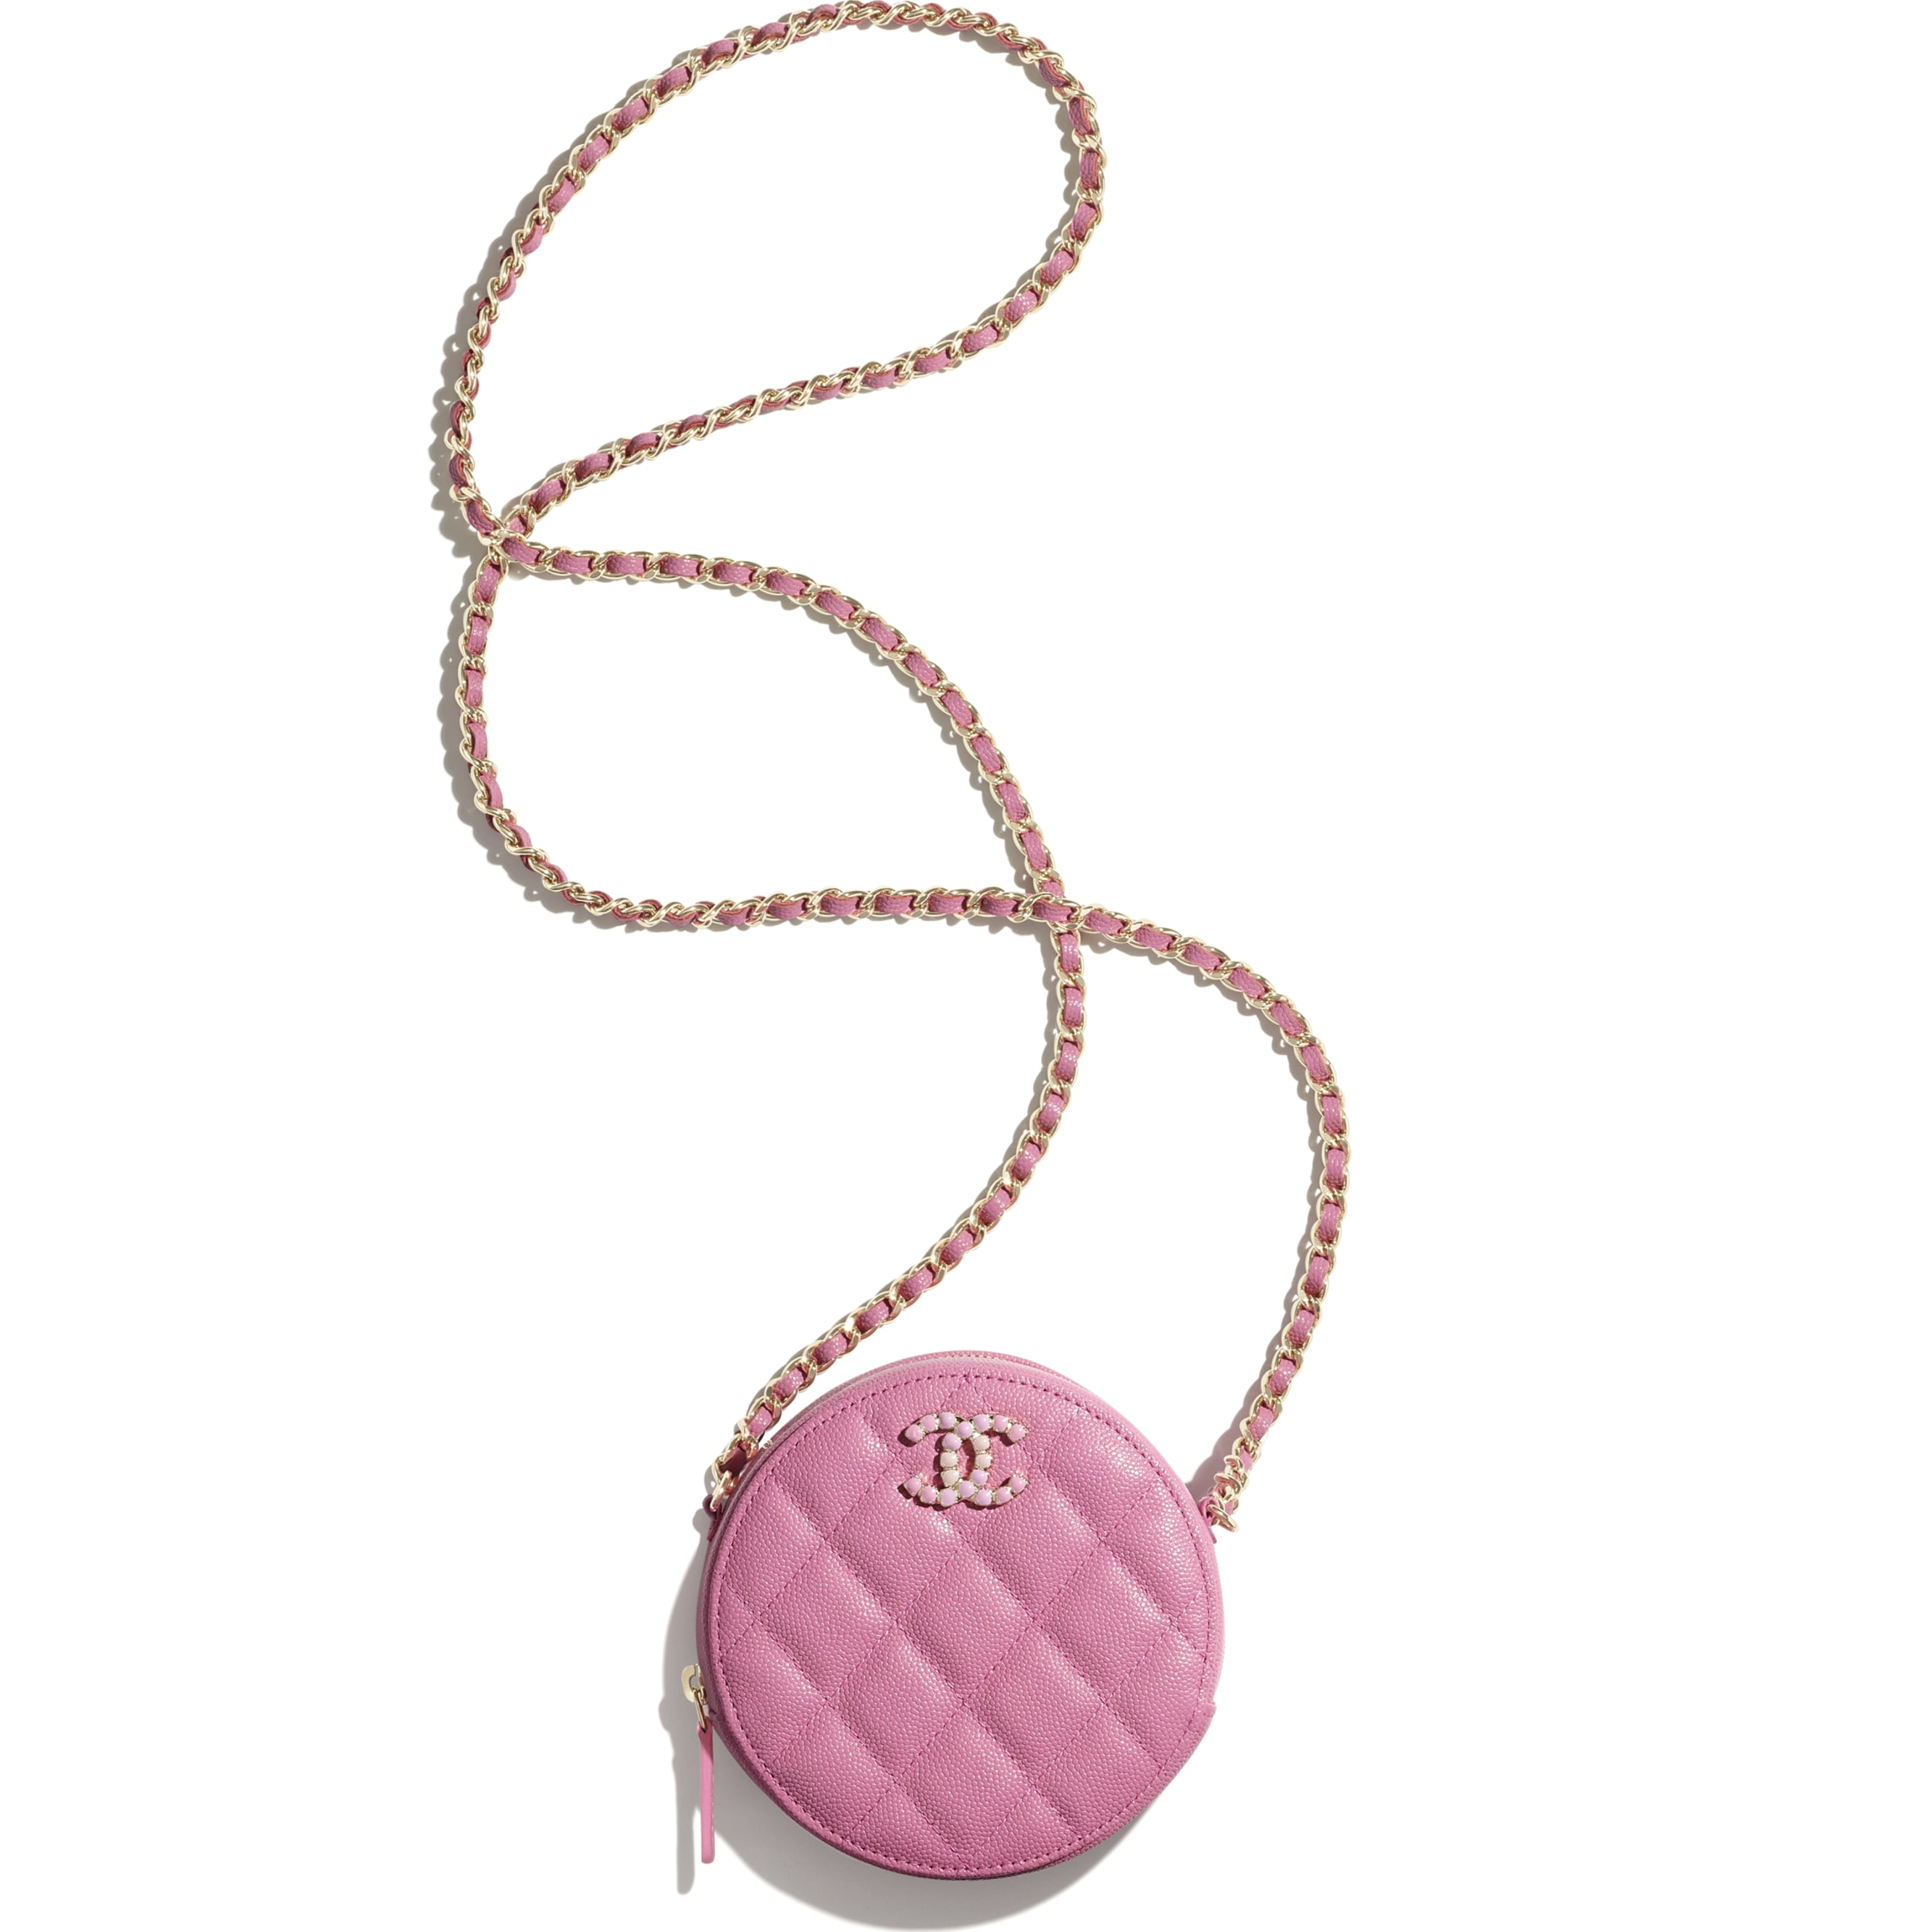 Clutch With Chain - Pink - Grained Calfskin & Laquered Gold-Tone Metal - CHANEL - Alternative view - see standard sized version